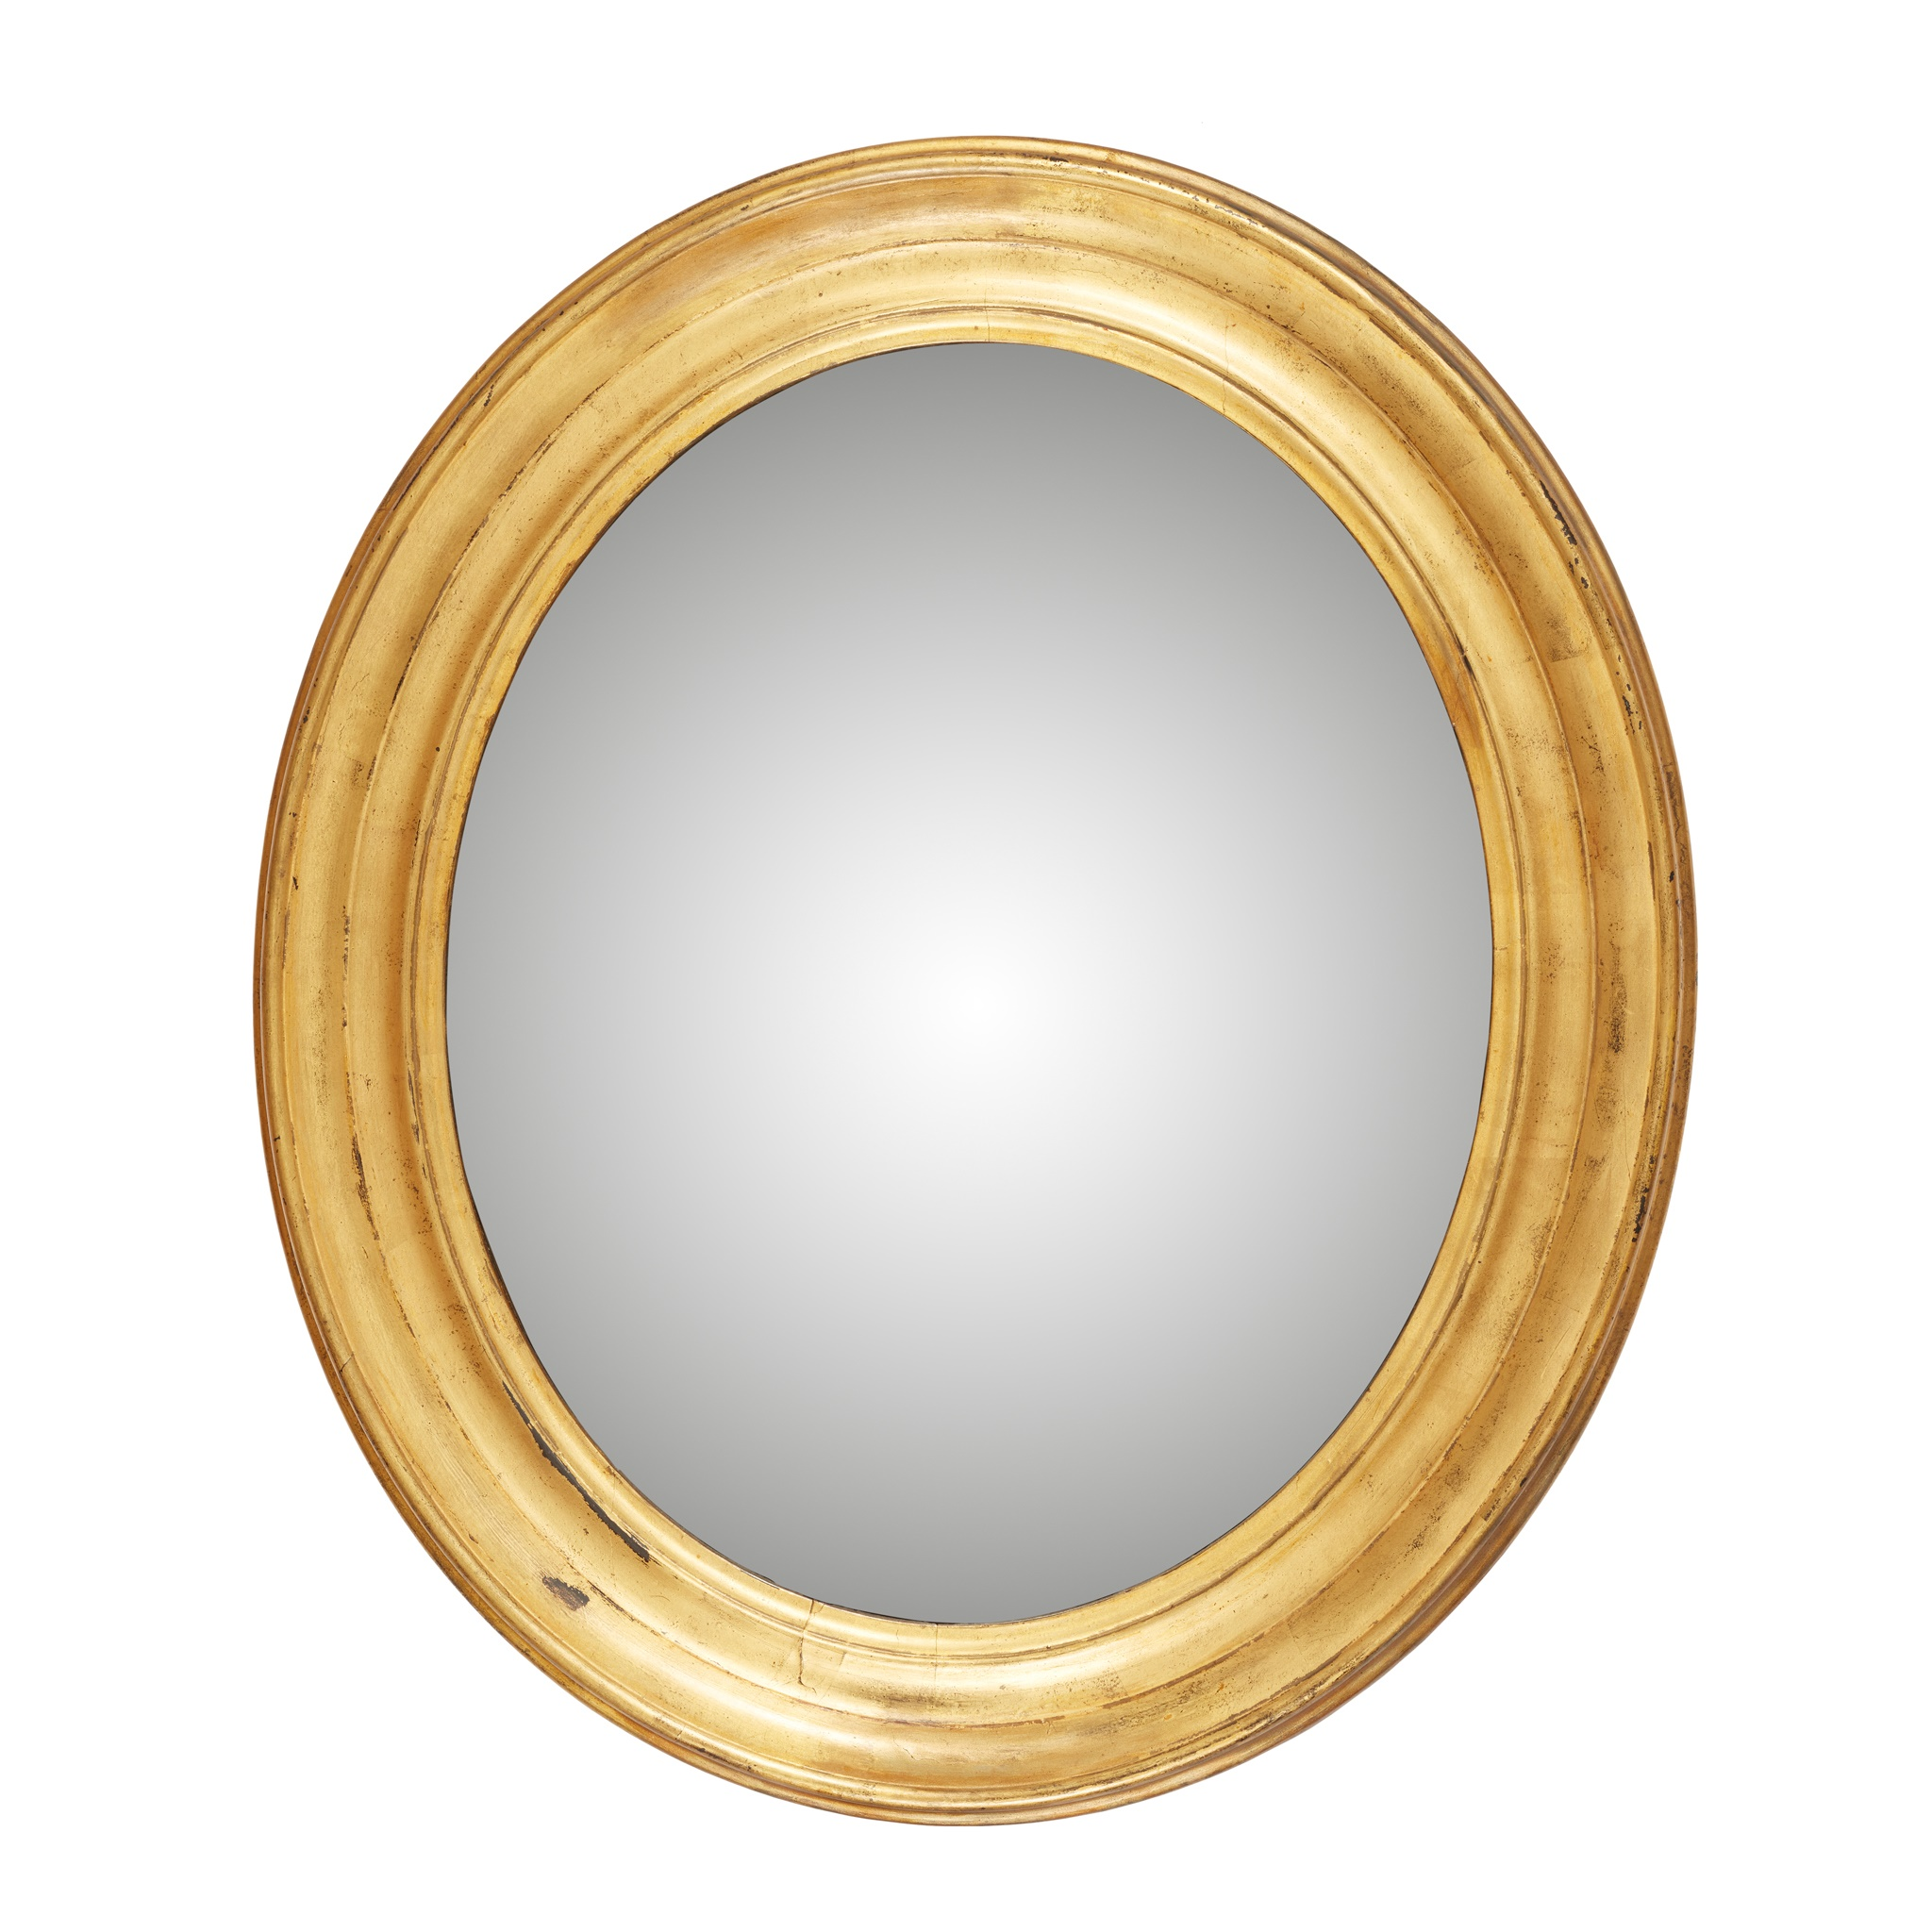 OVAL GILTWOOD CONVEX MIRROR 19TH CENTURY